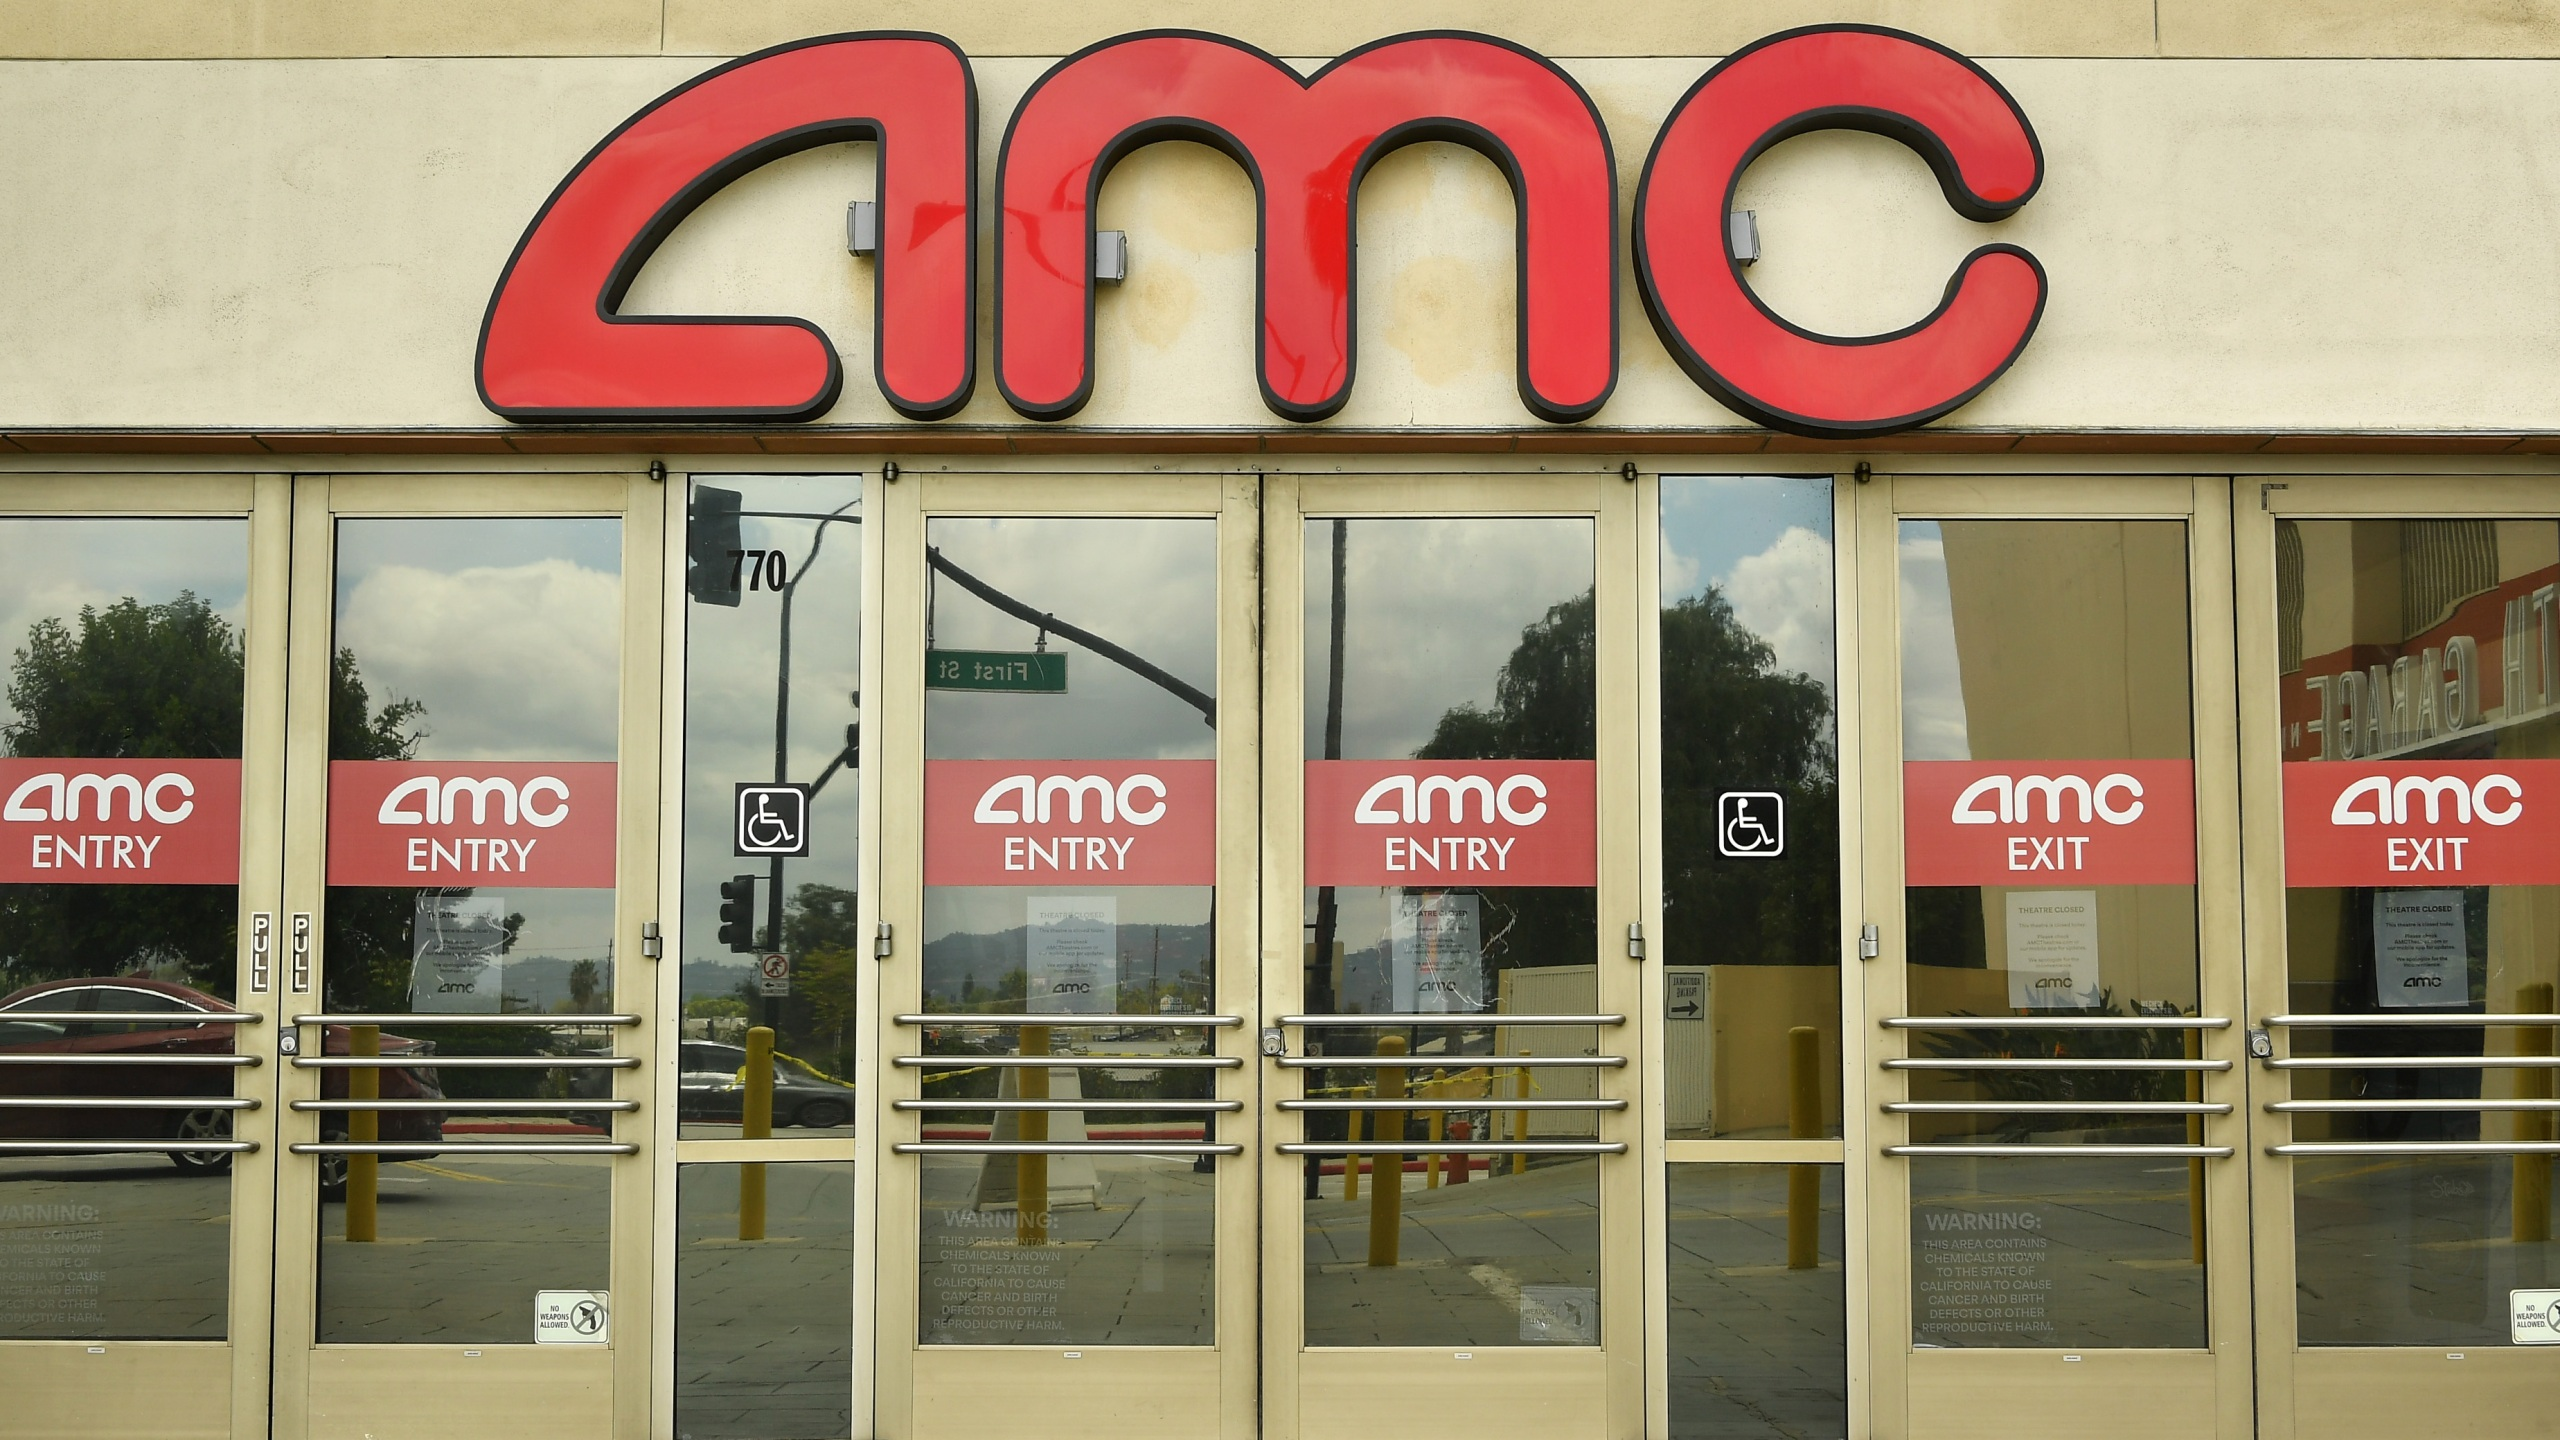 Outside of AMC Burbank Town Center 8 during the coronavirus pandemic in Burbank, CA. Due to COVID-19, AMC Theatres were forced to close all global locations in March. (Photo by Amy Sussman/Getty Images)